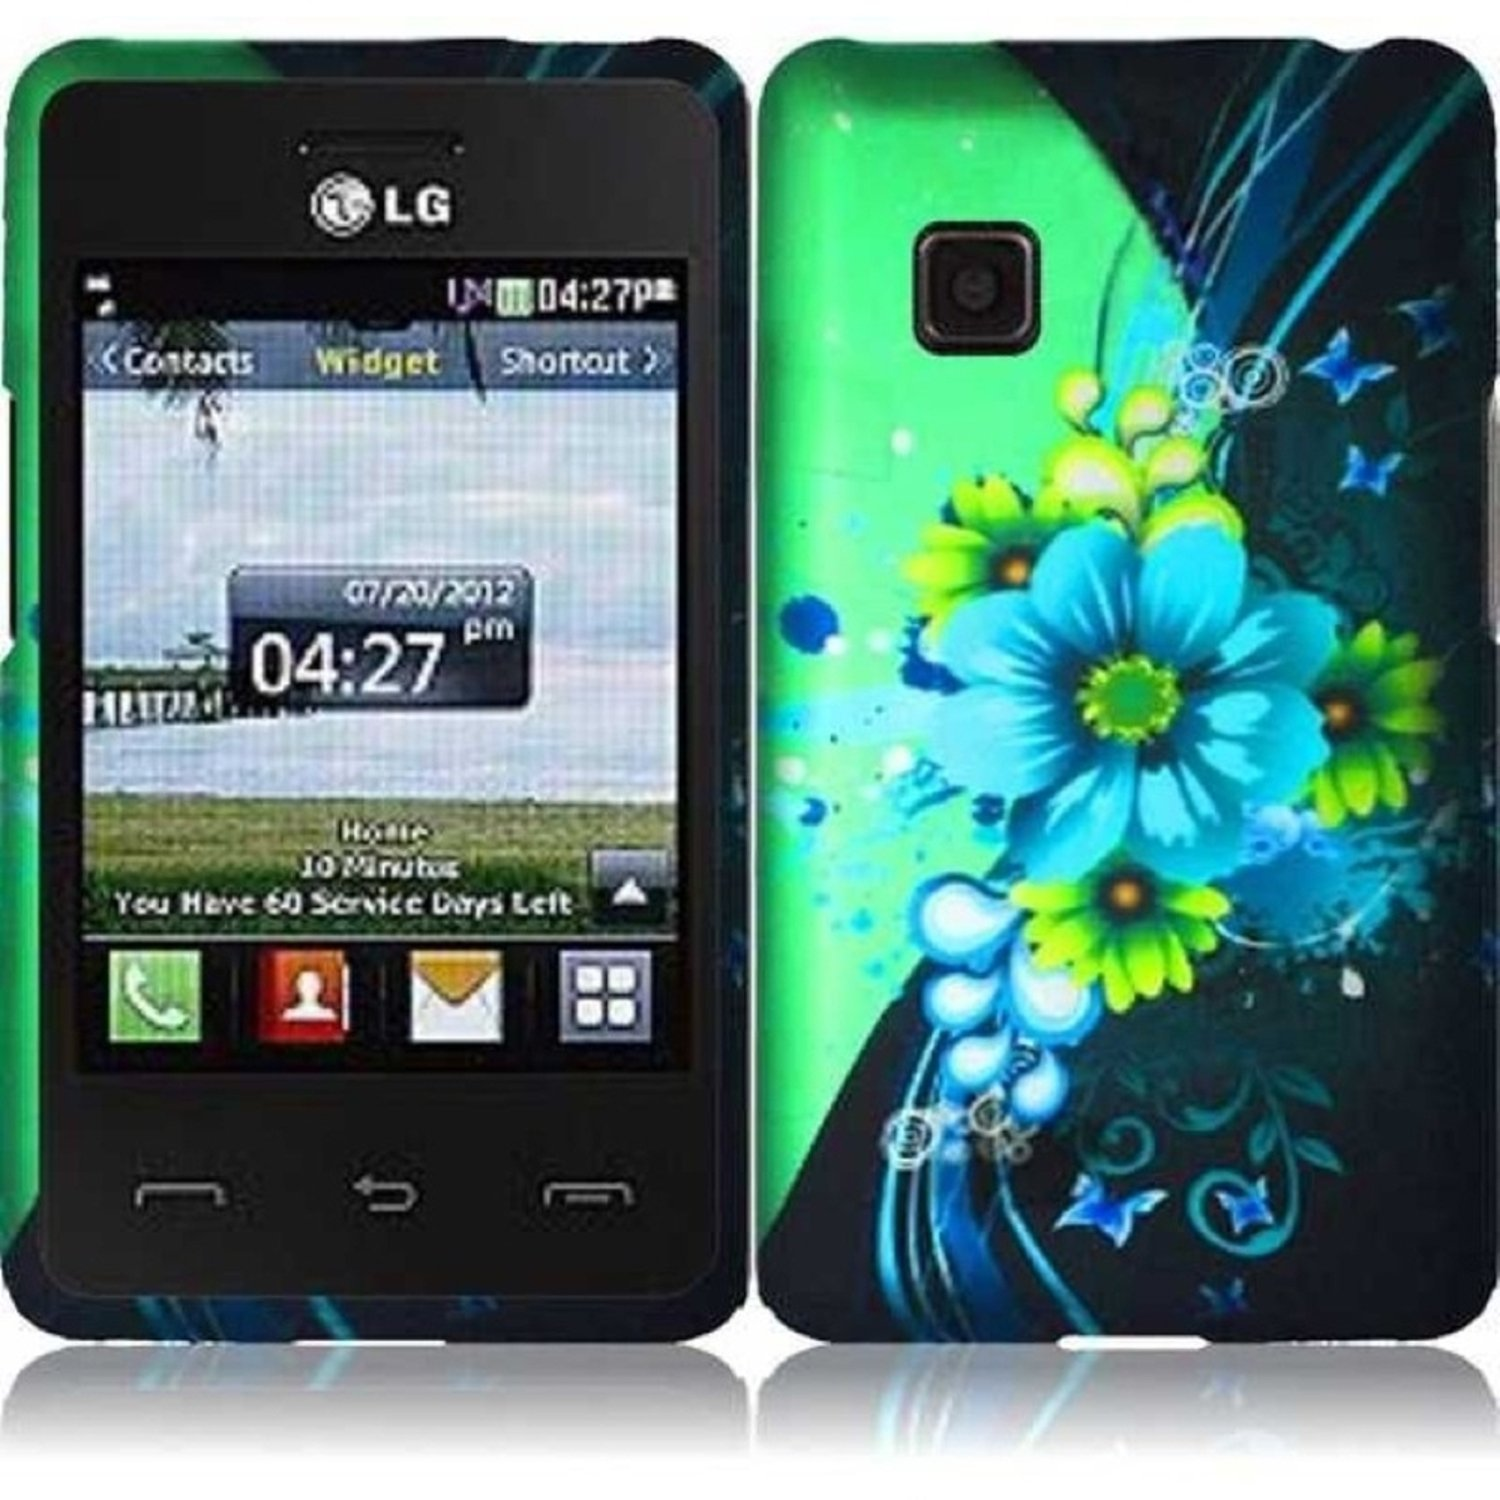 Design Rubberized Hard Case Cover + Screen Protector for LG 840G - Green Flower